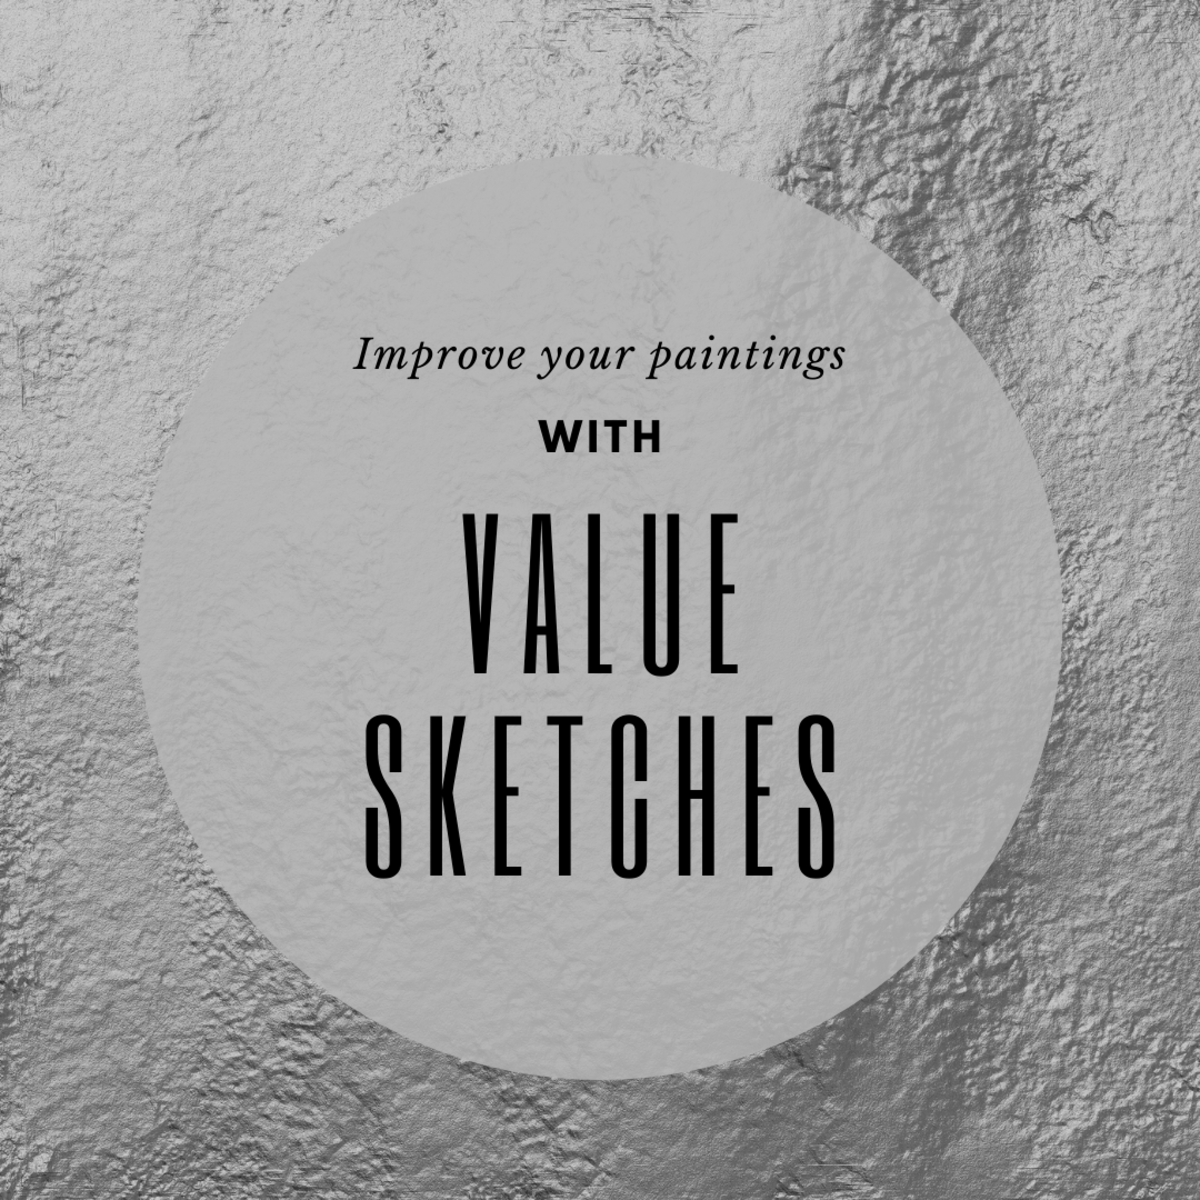 What is a value sketch, and why is it important?